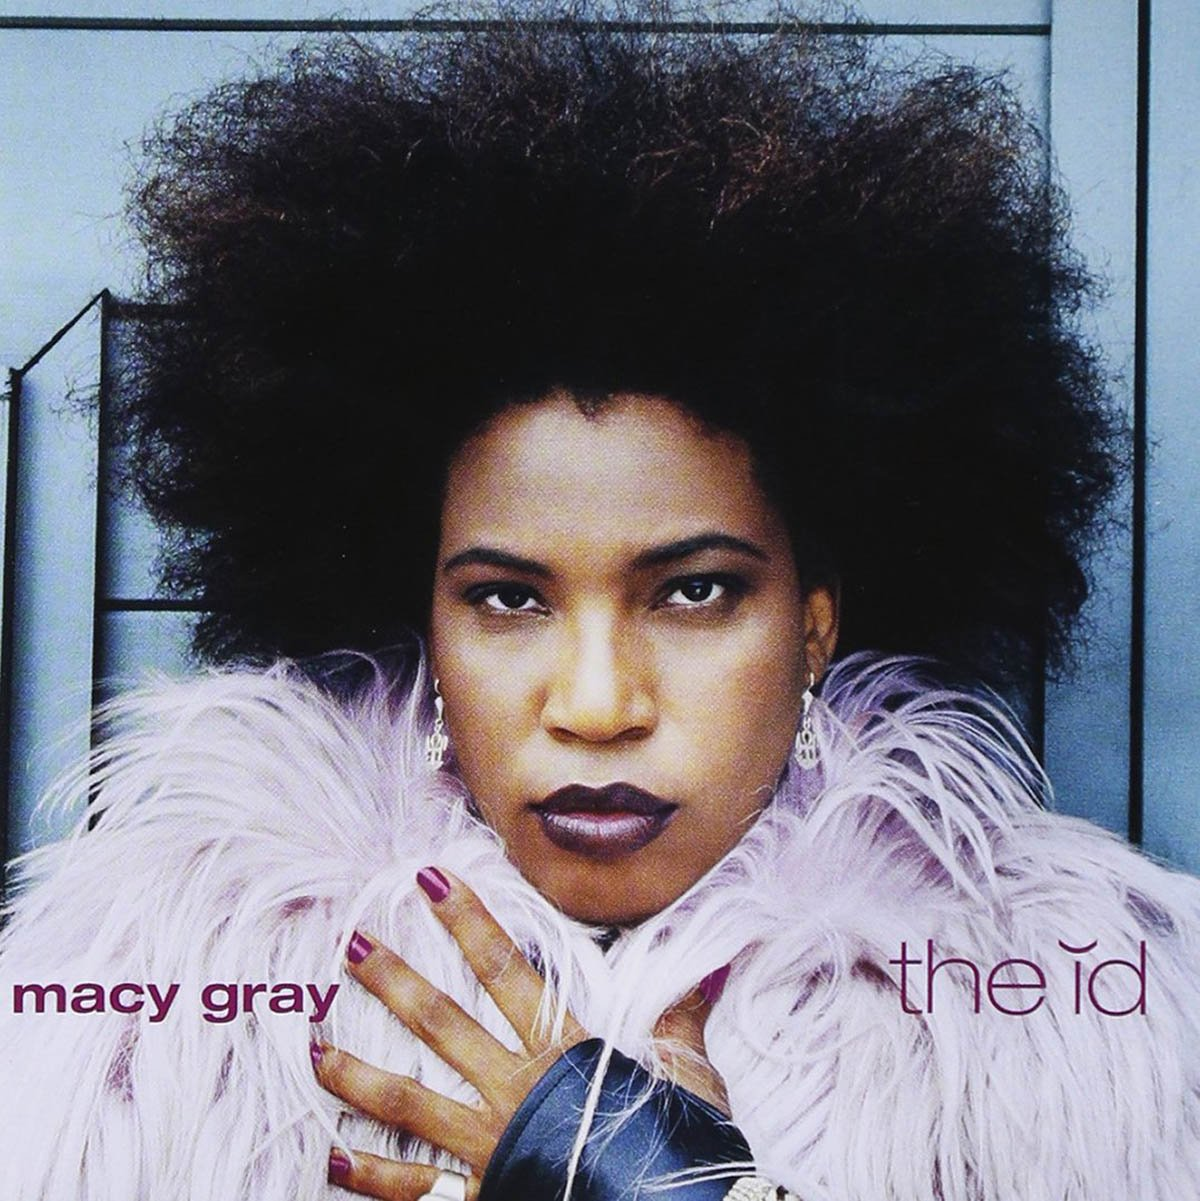 Macy Gray, The Id